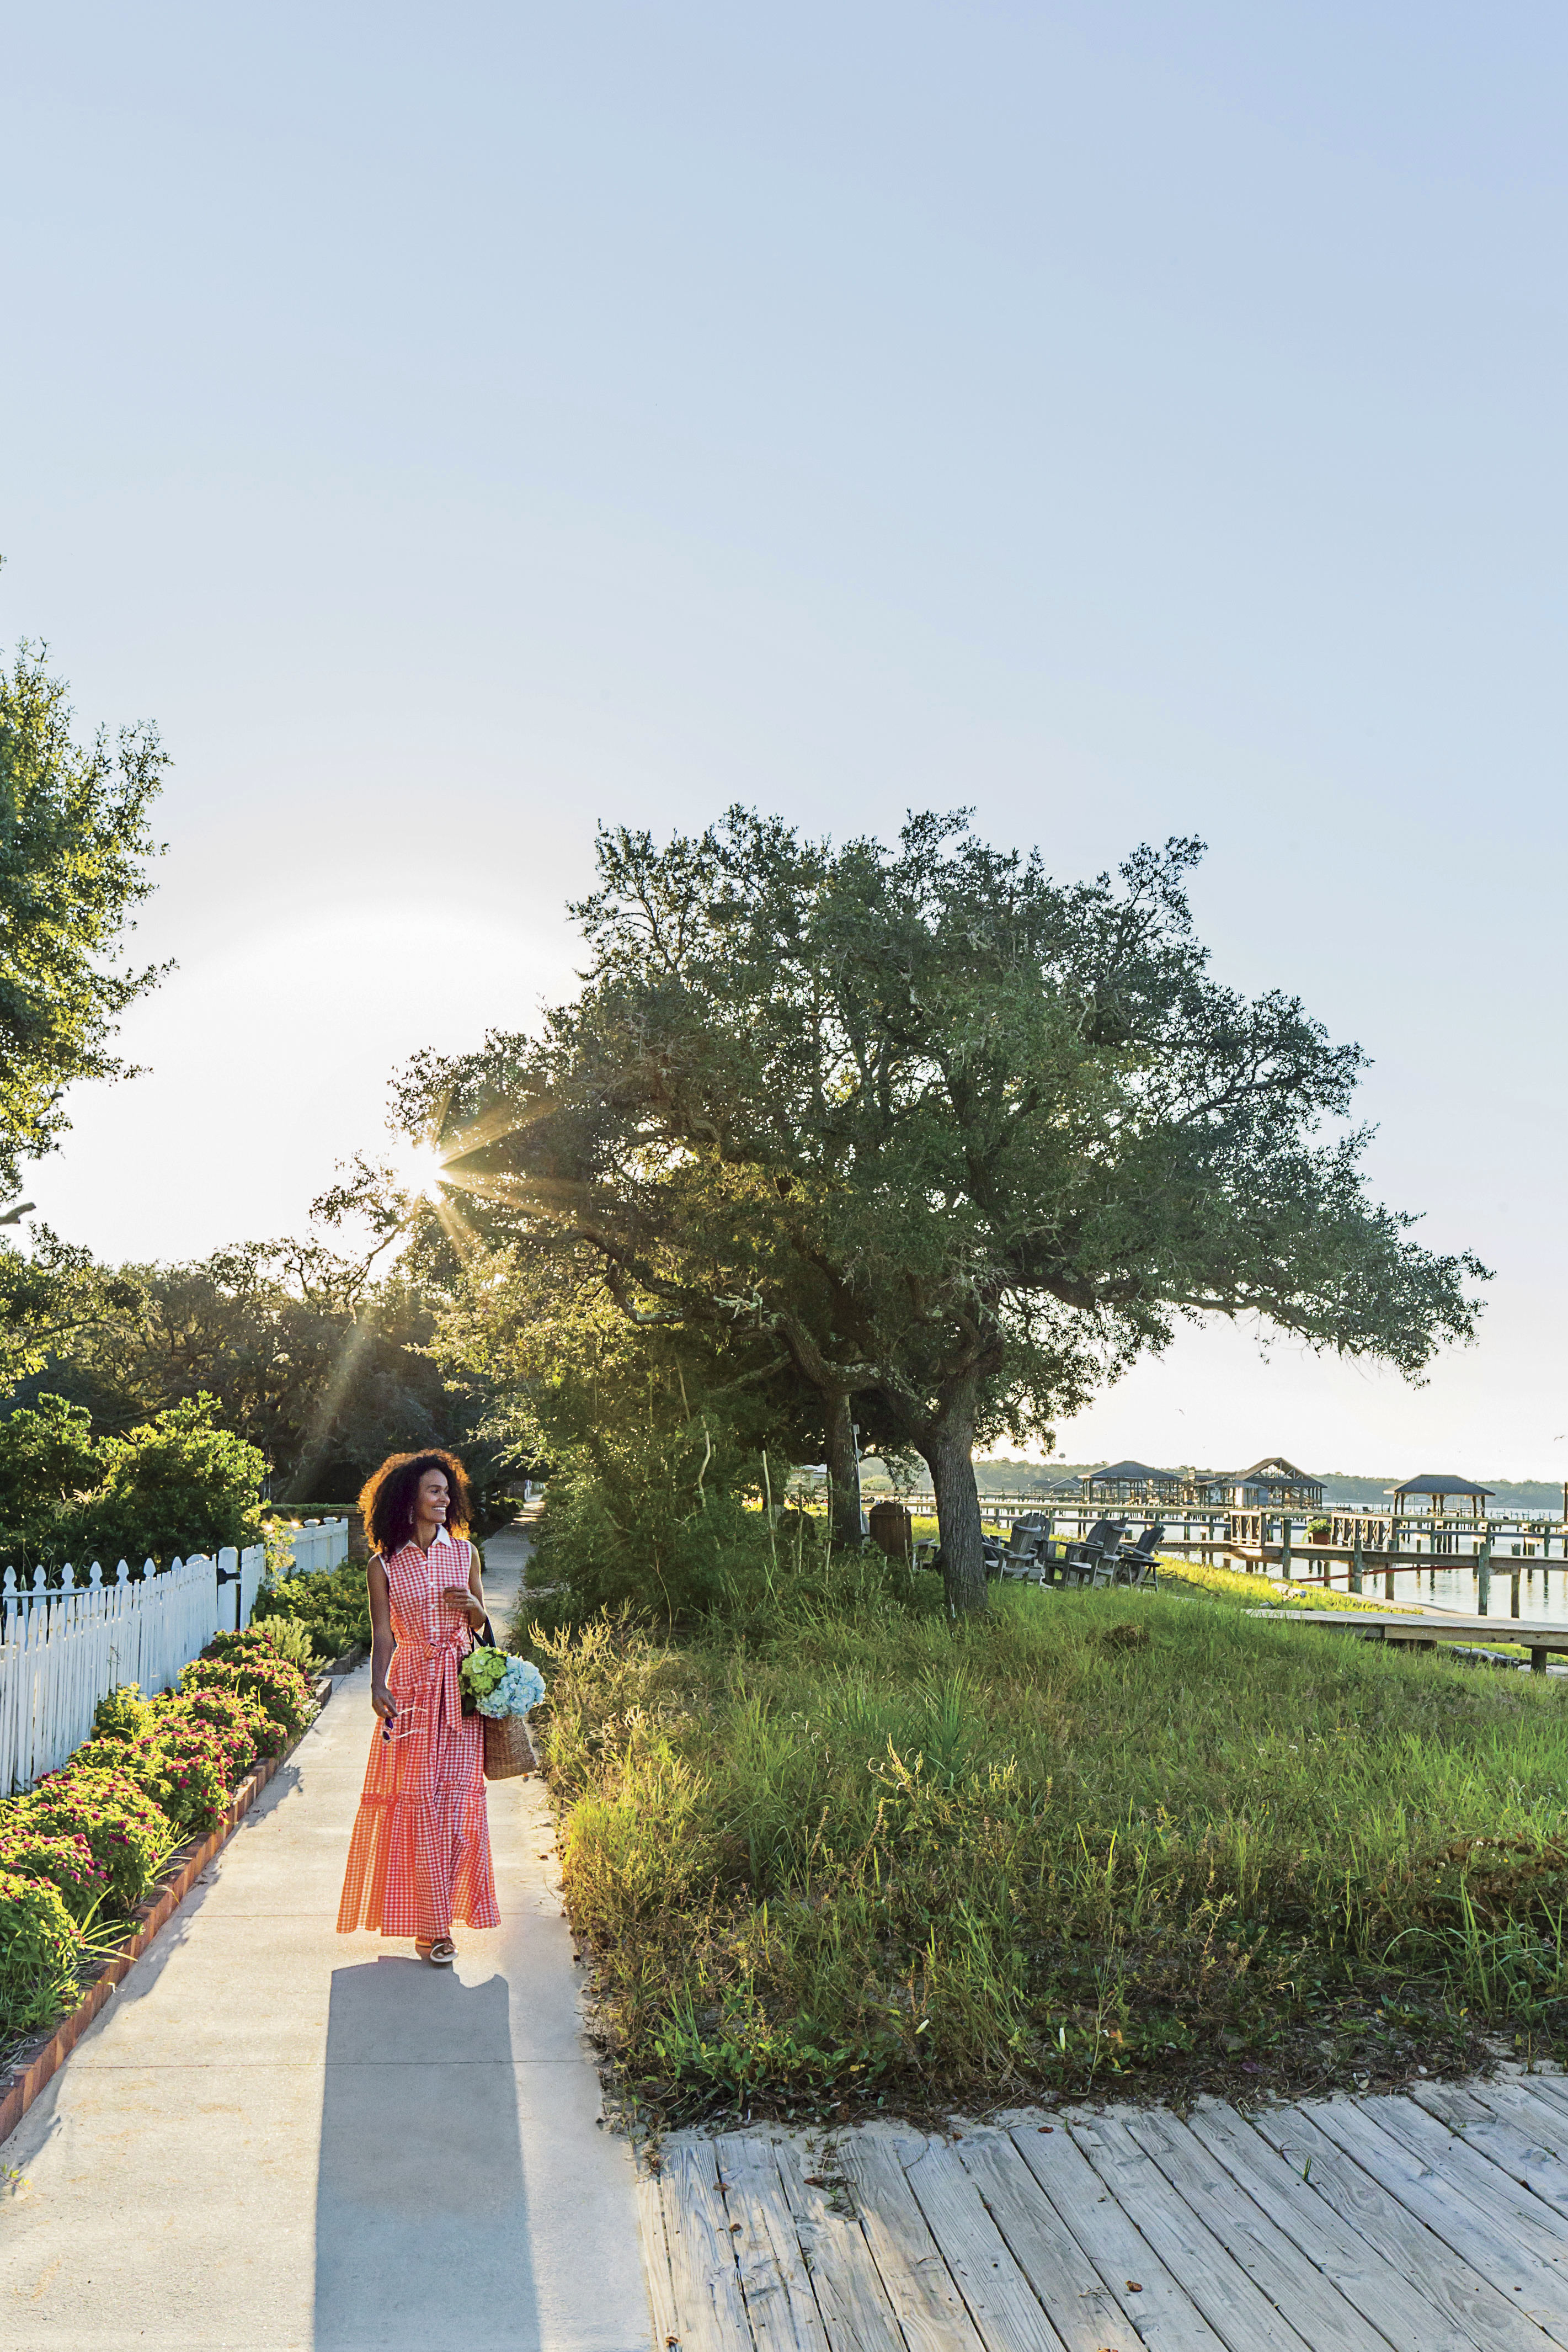 Fairhope, Alabama: The Beauty on the Bay